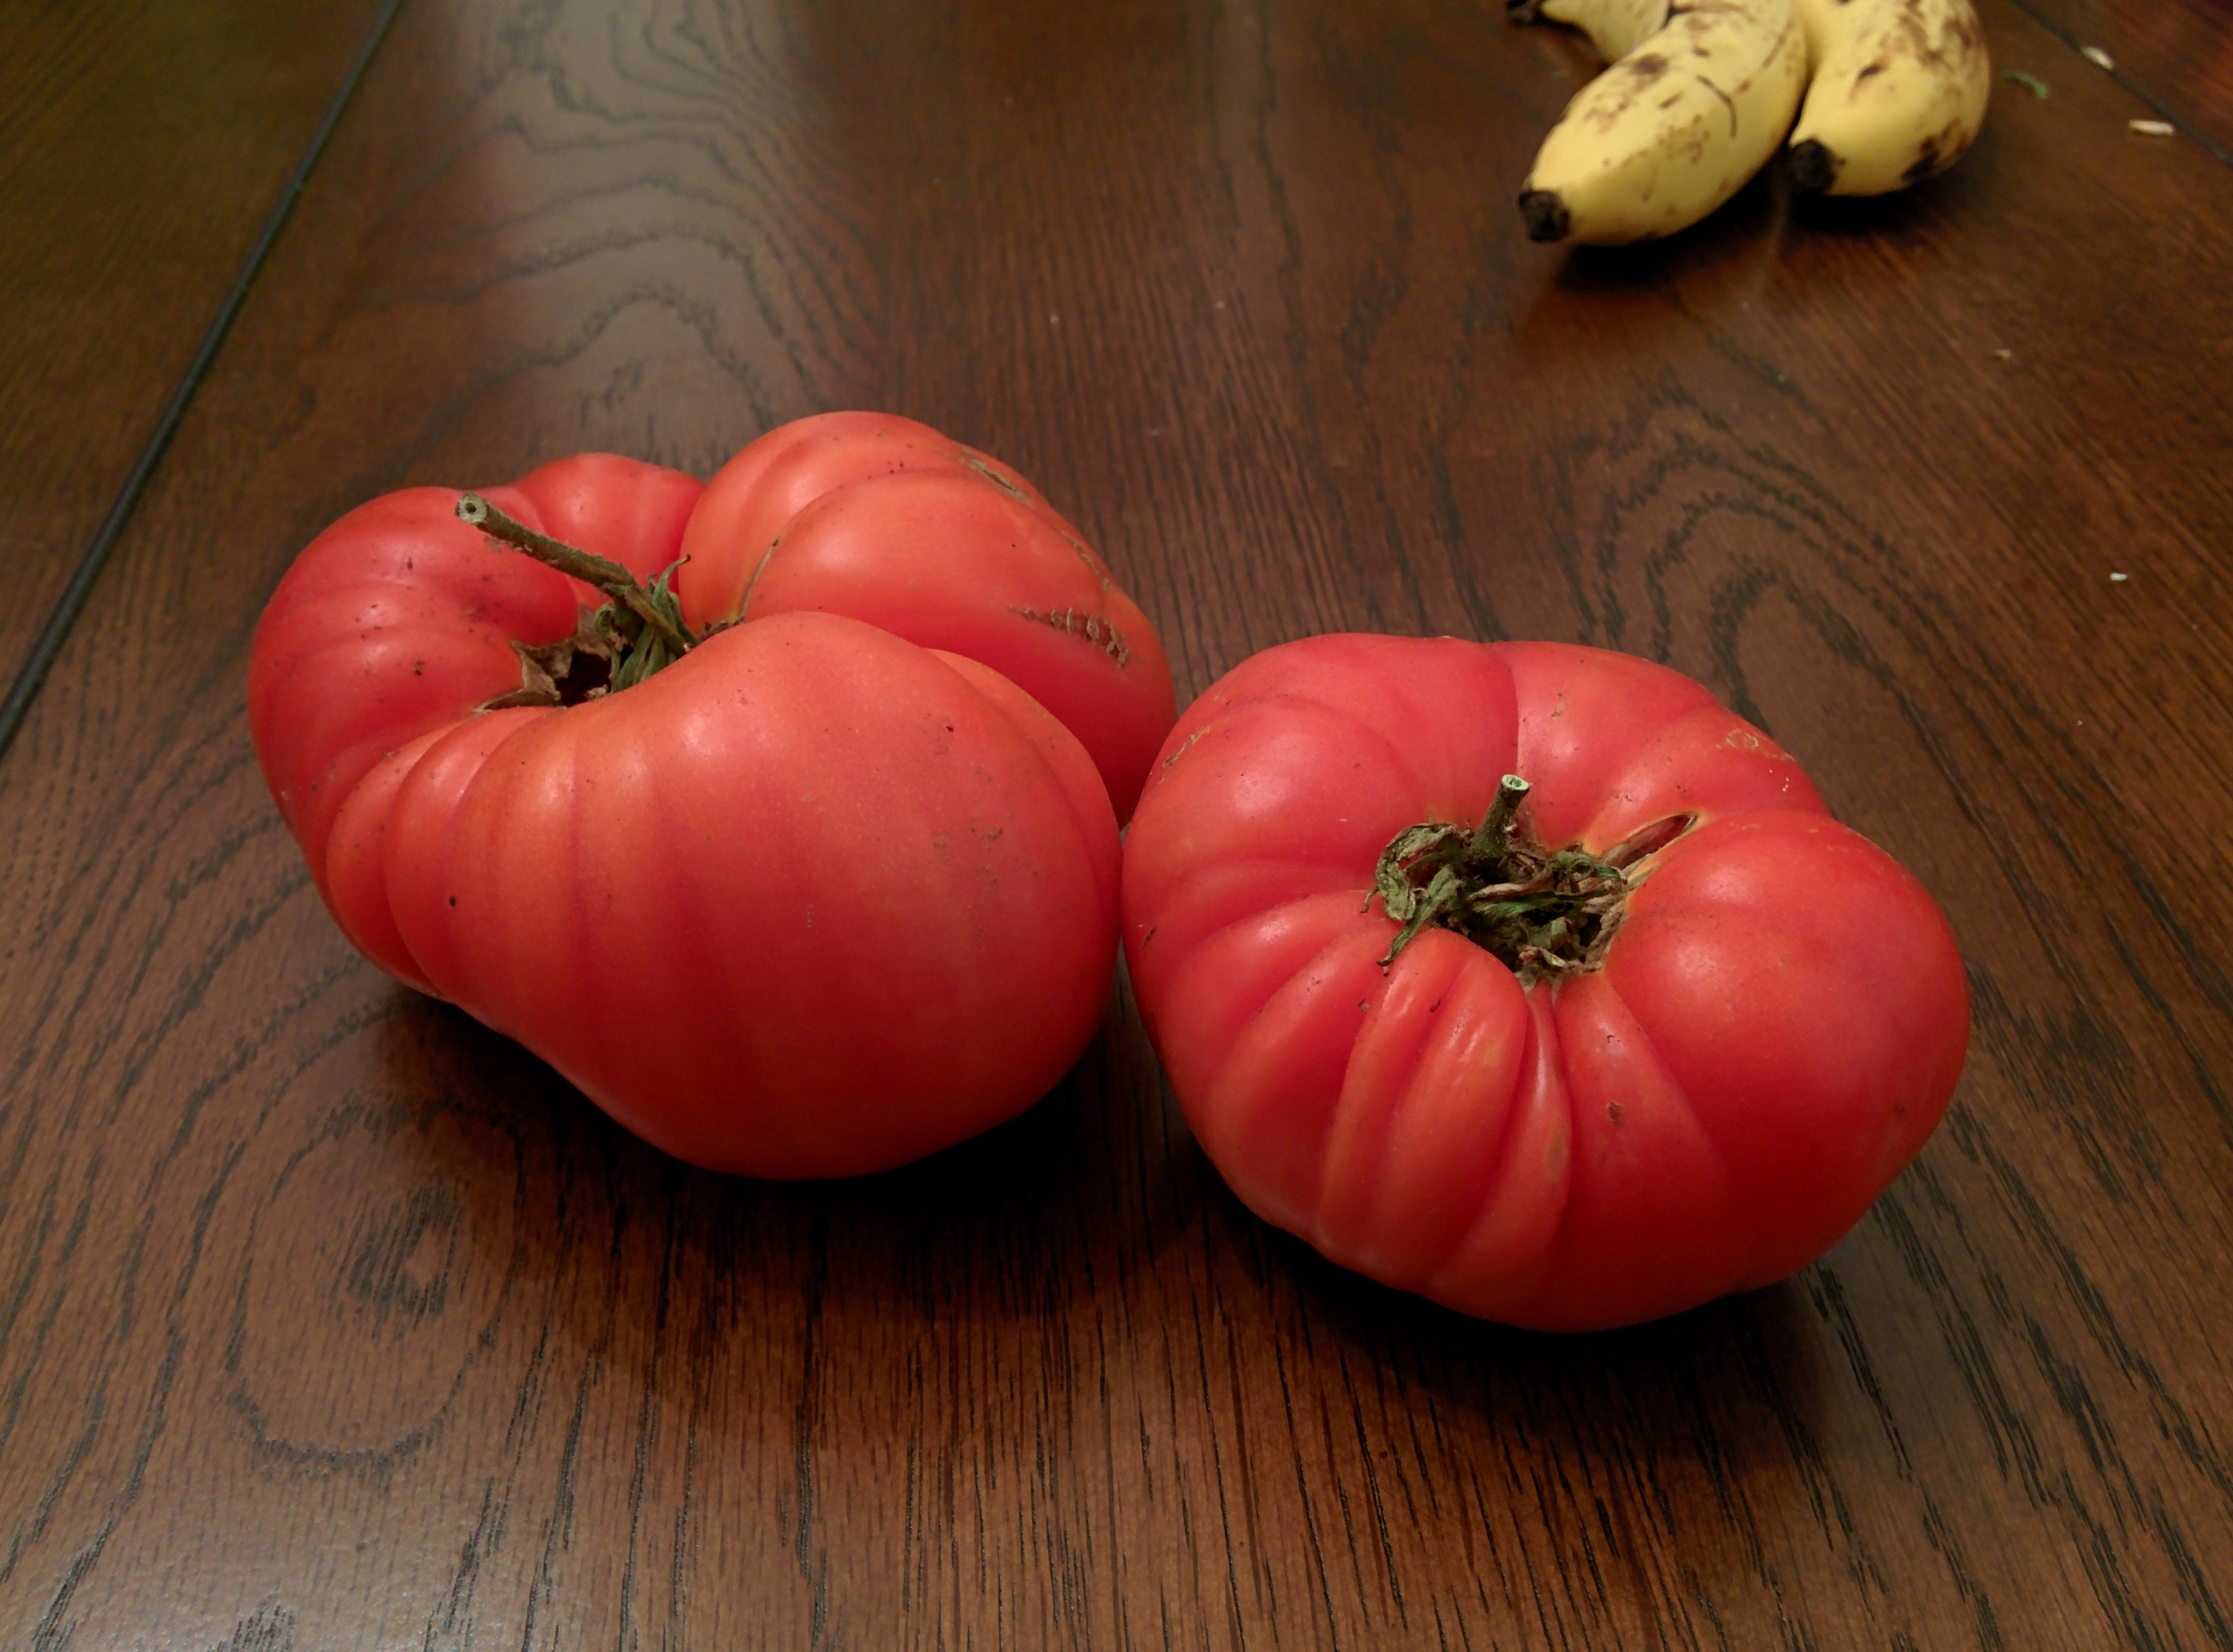 Gigantesque Tomatoes